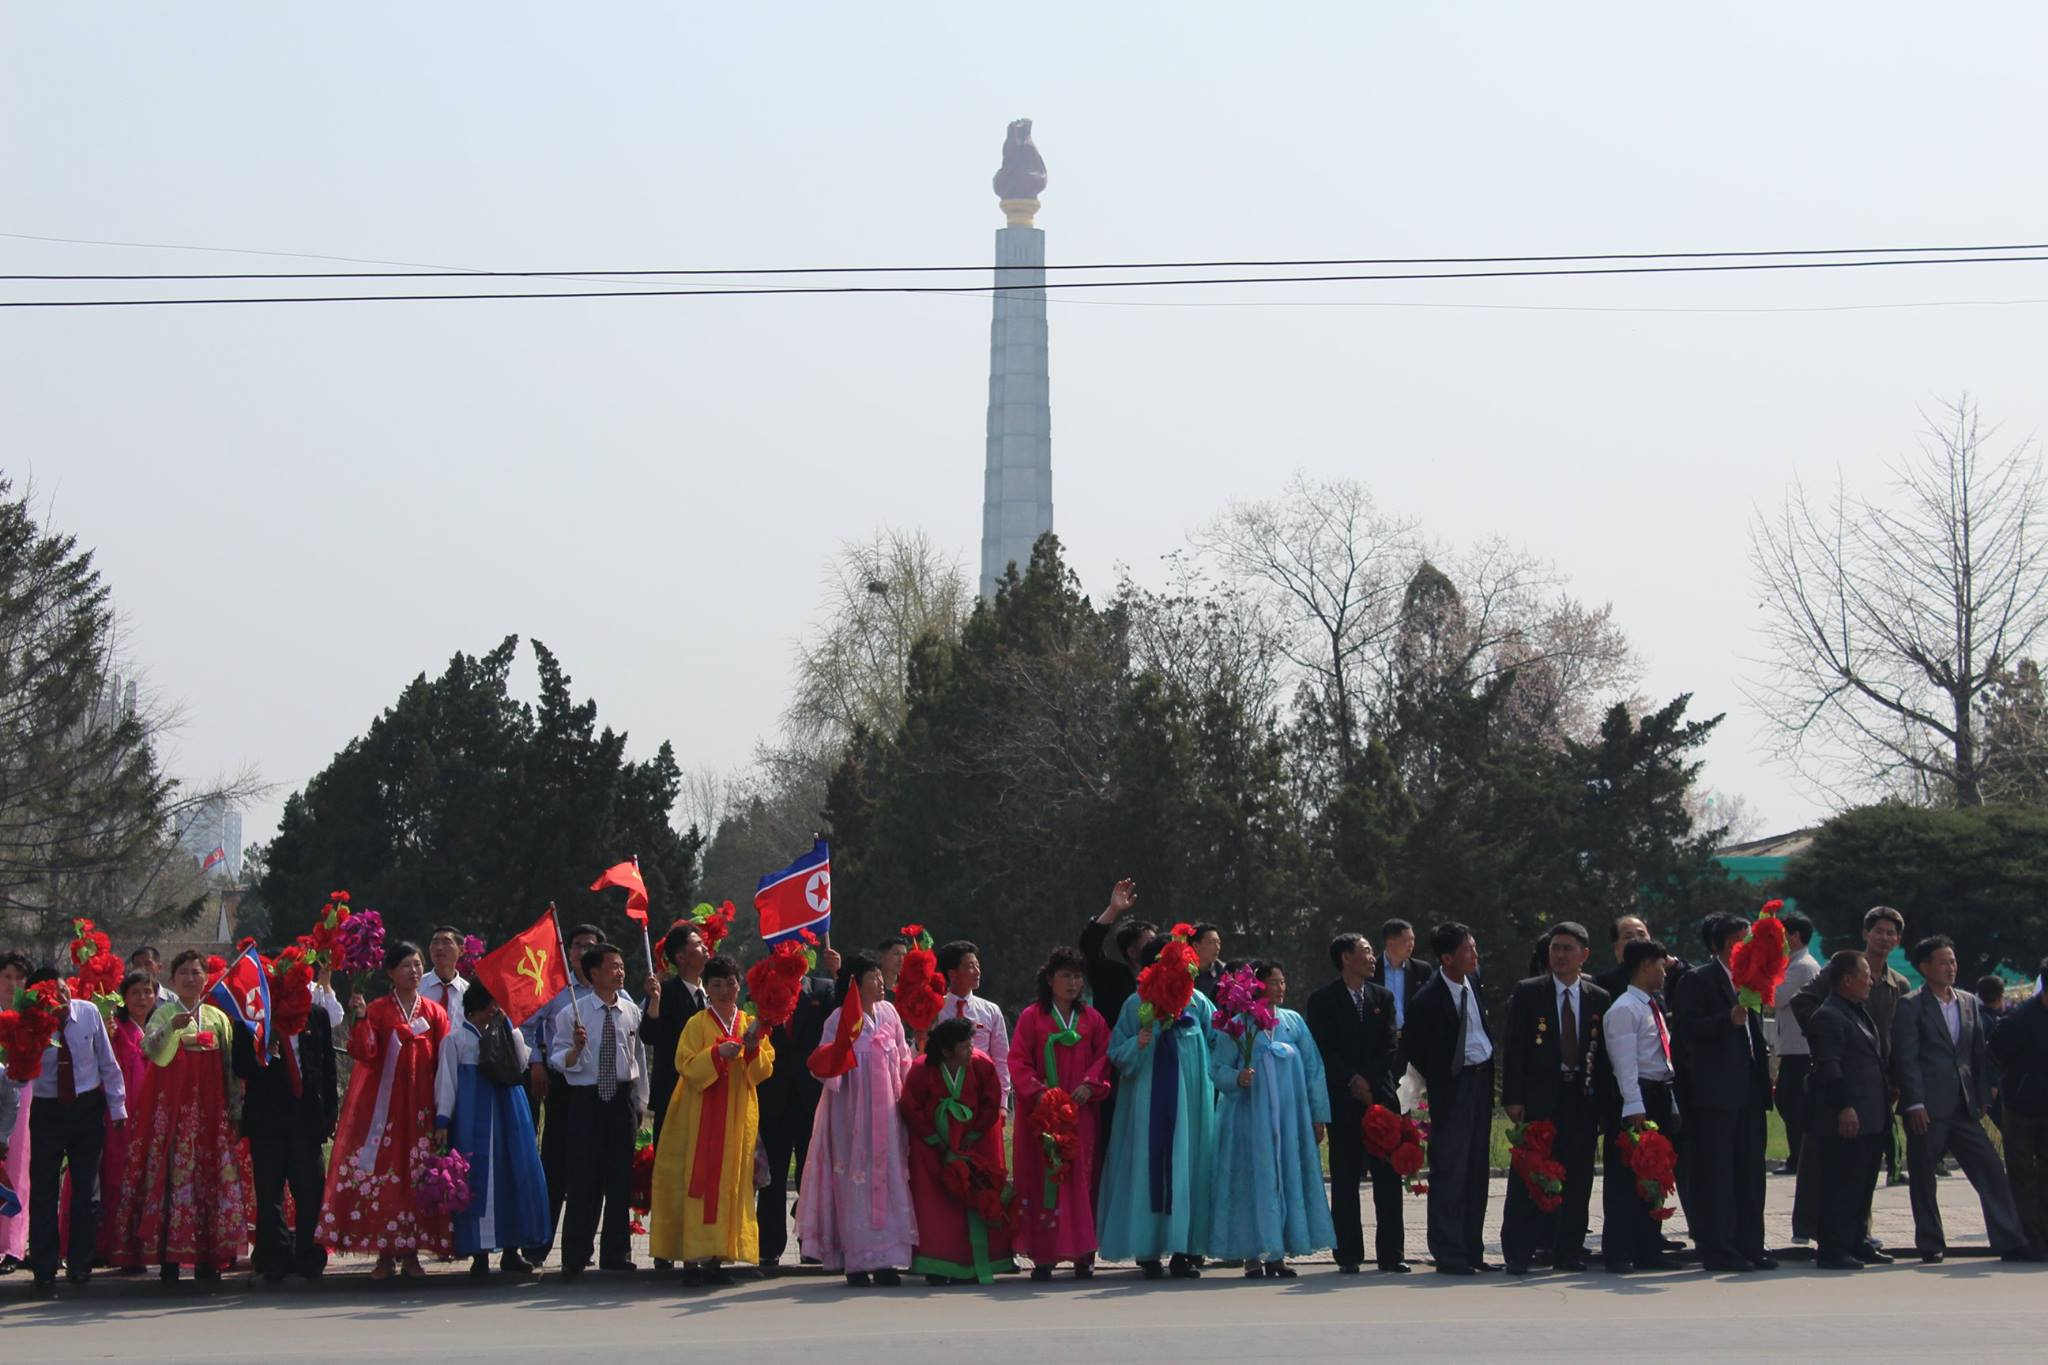 Lupine Travel's    tours to North Korea    give customers the chance to see festivals like this. Image credit:    Lupine Travel